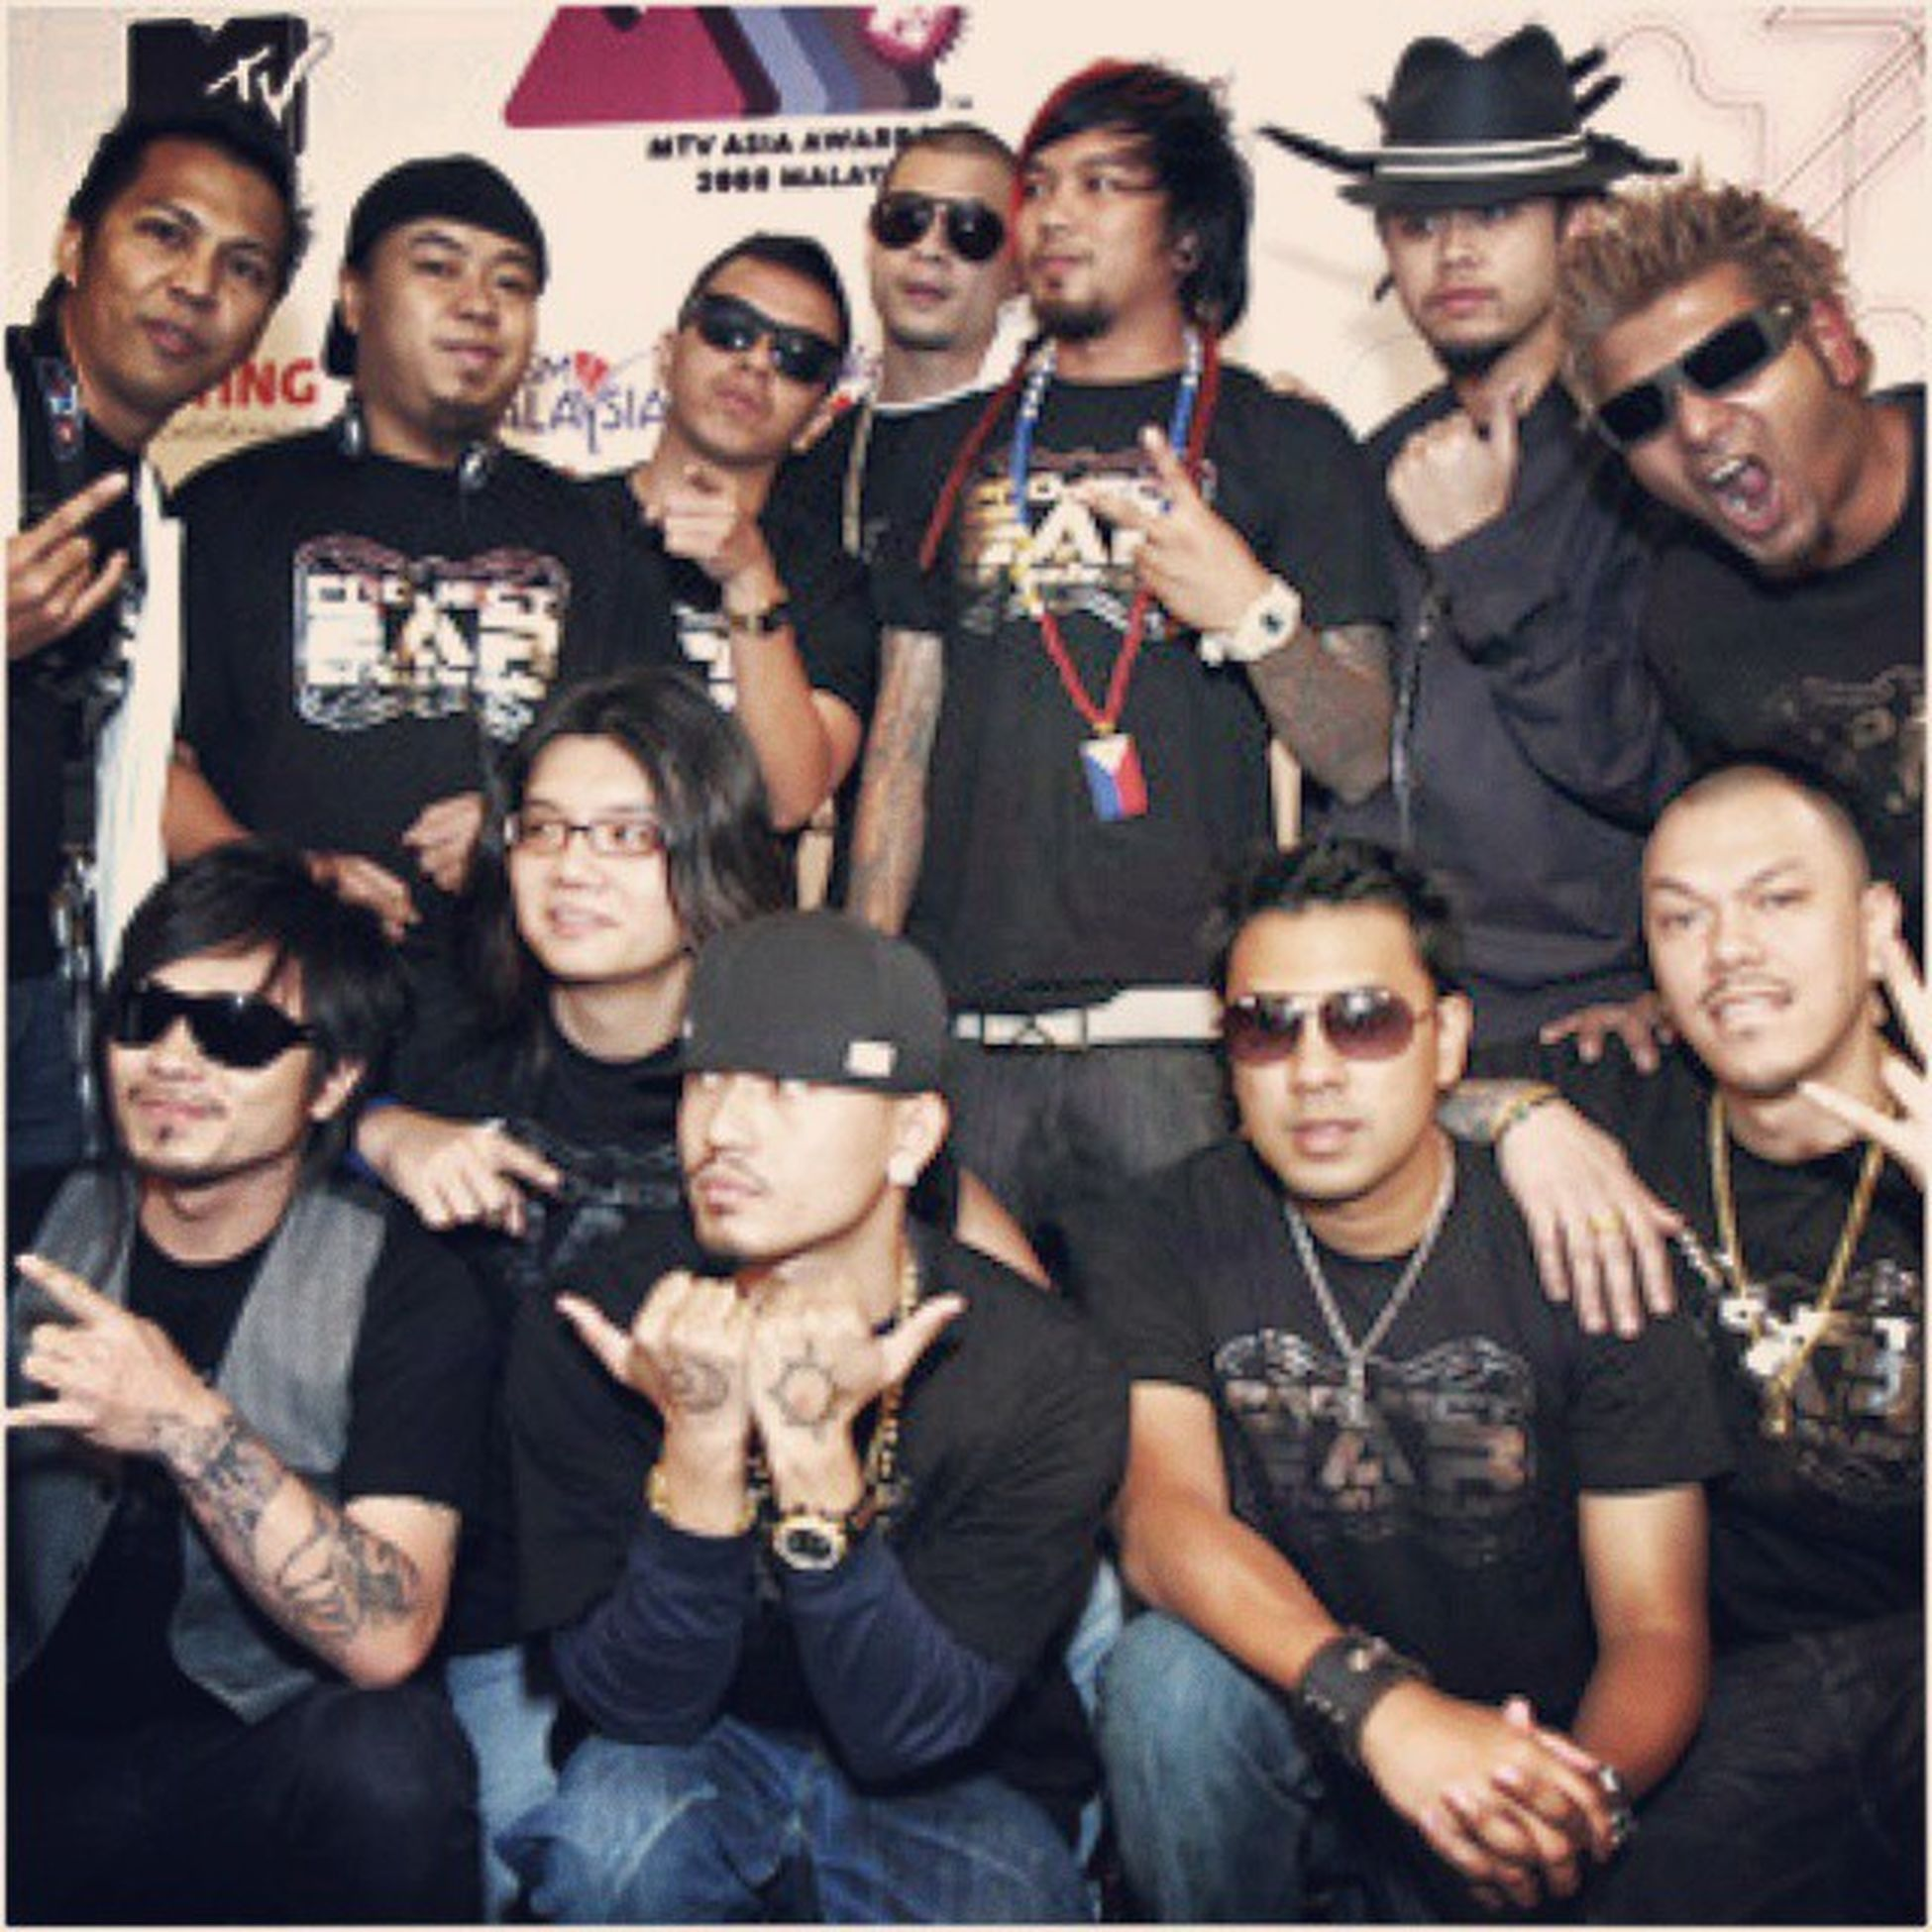 Project E.A.R. (East Asian Revolution) is a supergroup of bands and acts from within South East Asia. Saintloco (Indonesia) Popshuvit (Malaysia) Thaitanium (Thailand) Slapshock (Philipinnes)